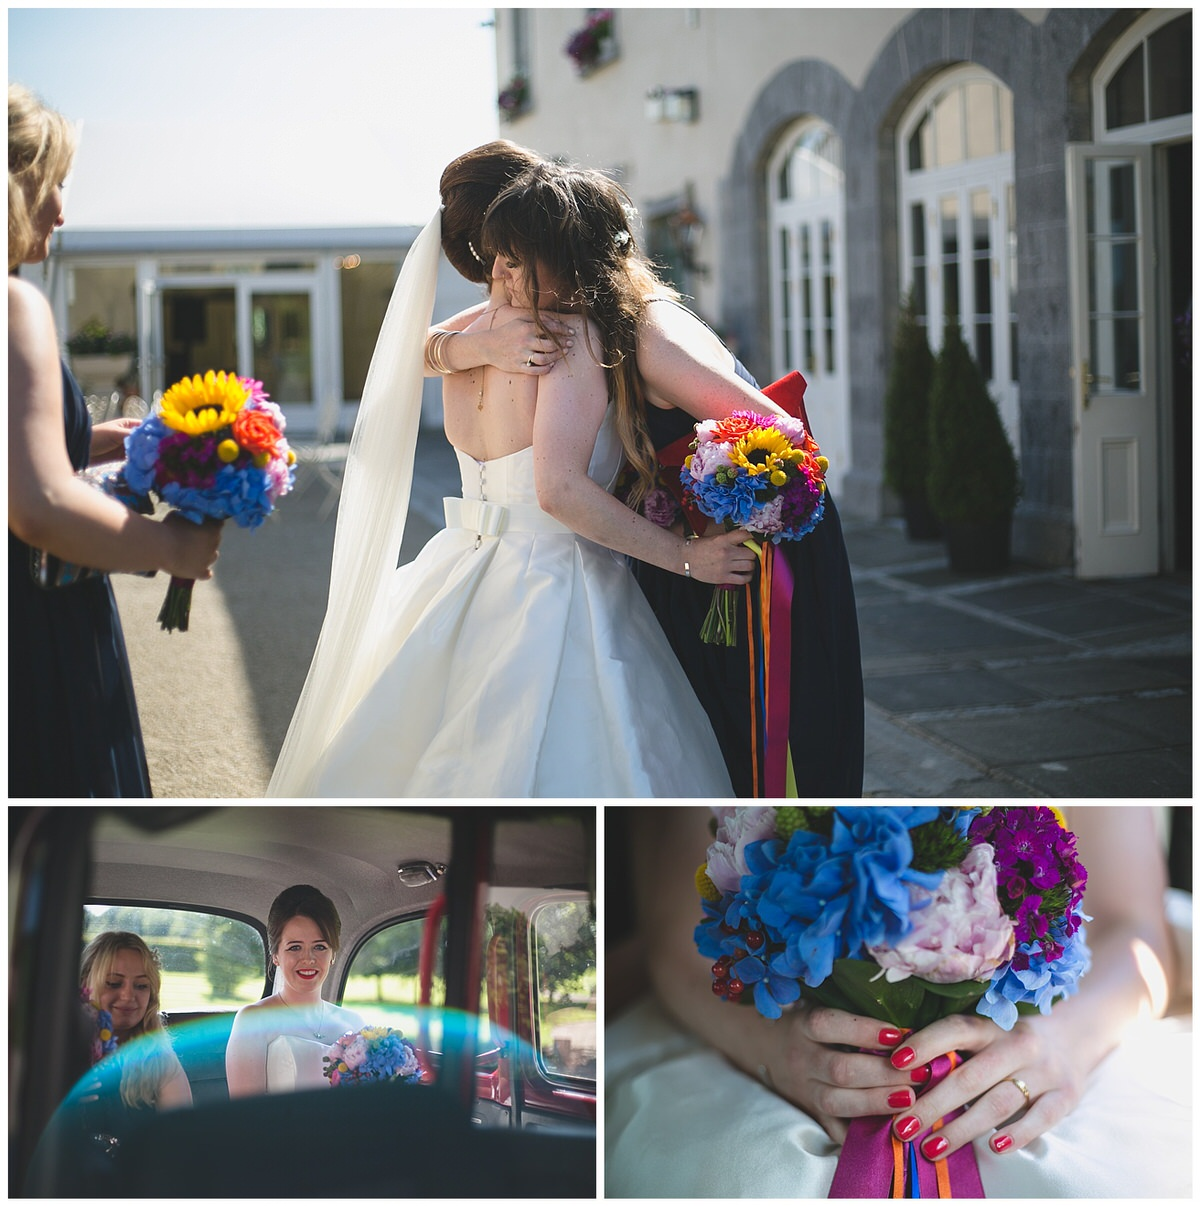 Bridal party on their way to the wedding with amazing colourful bouquets